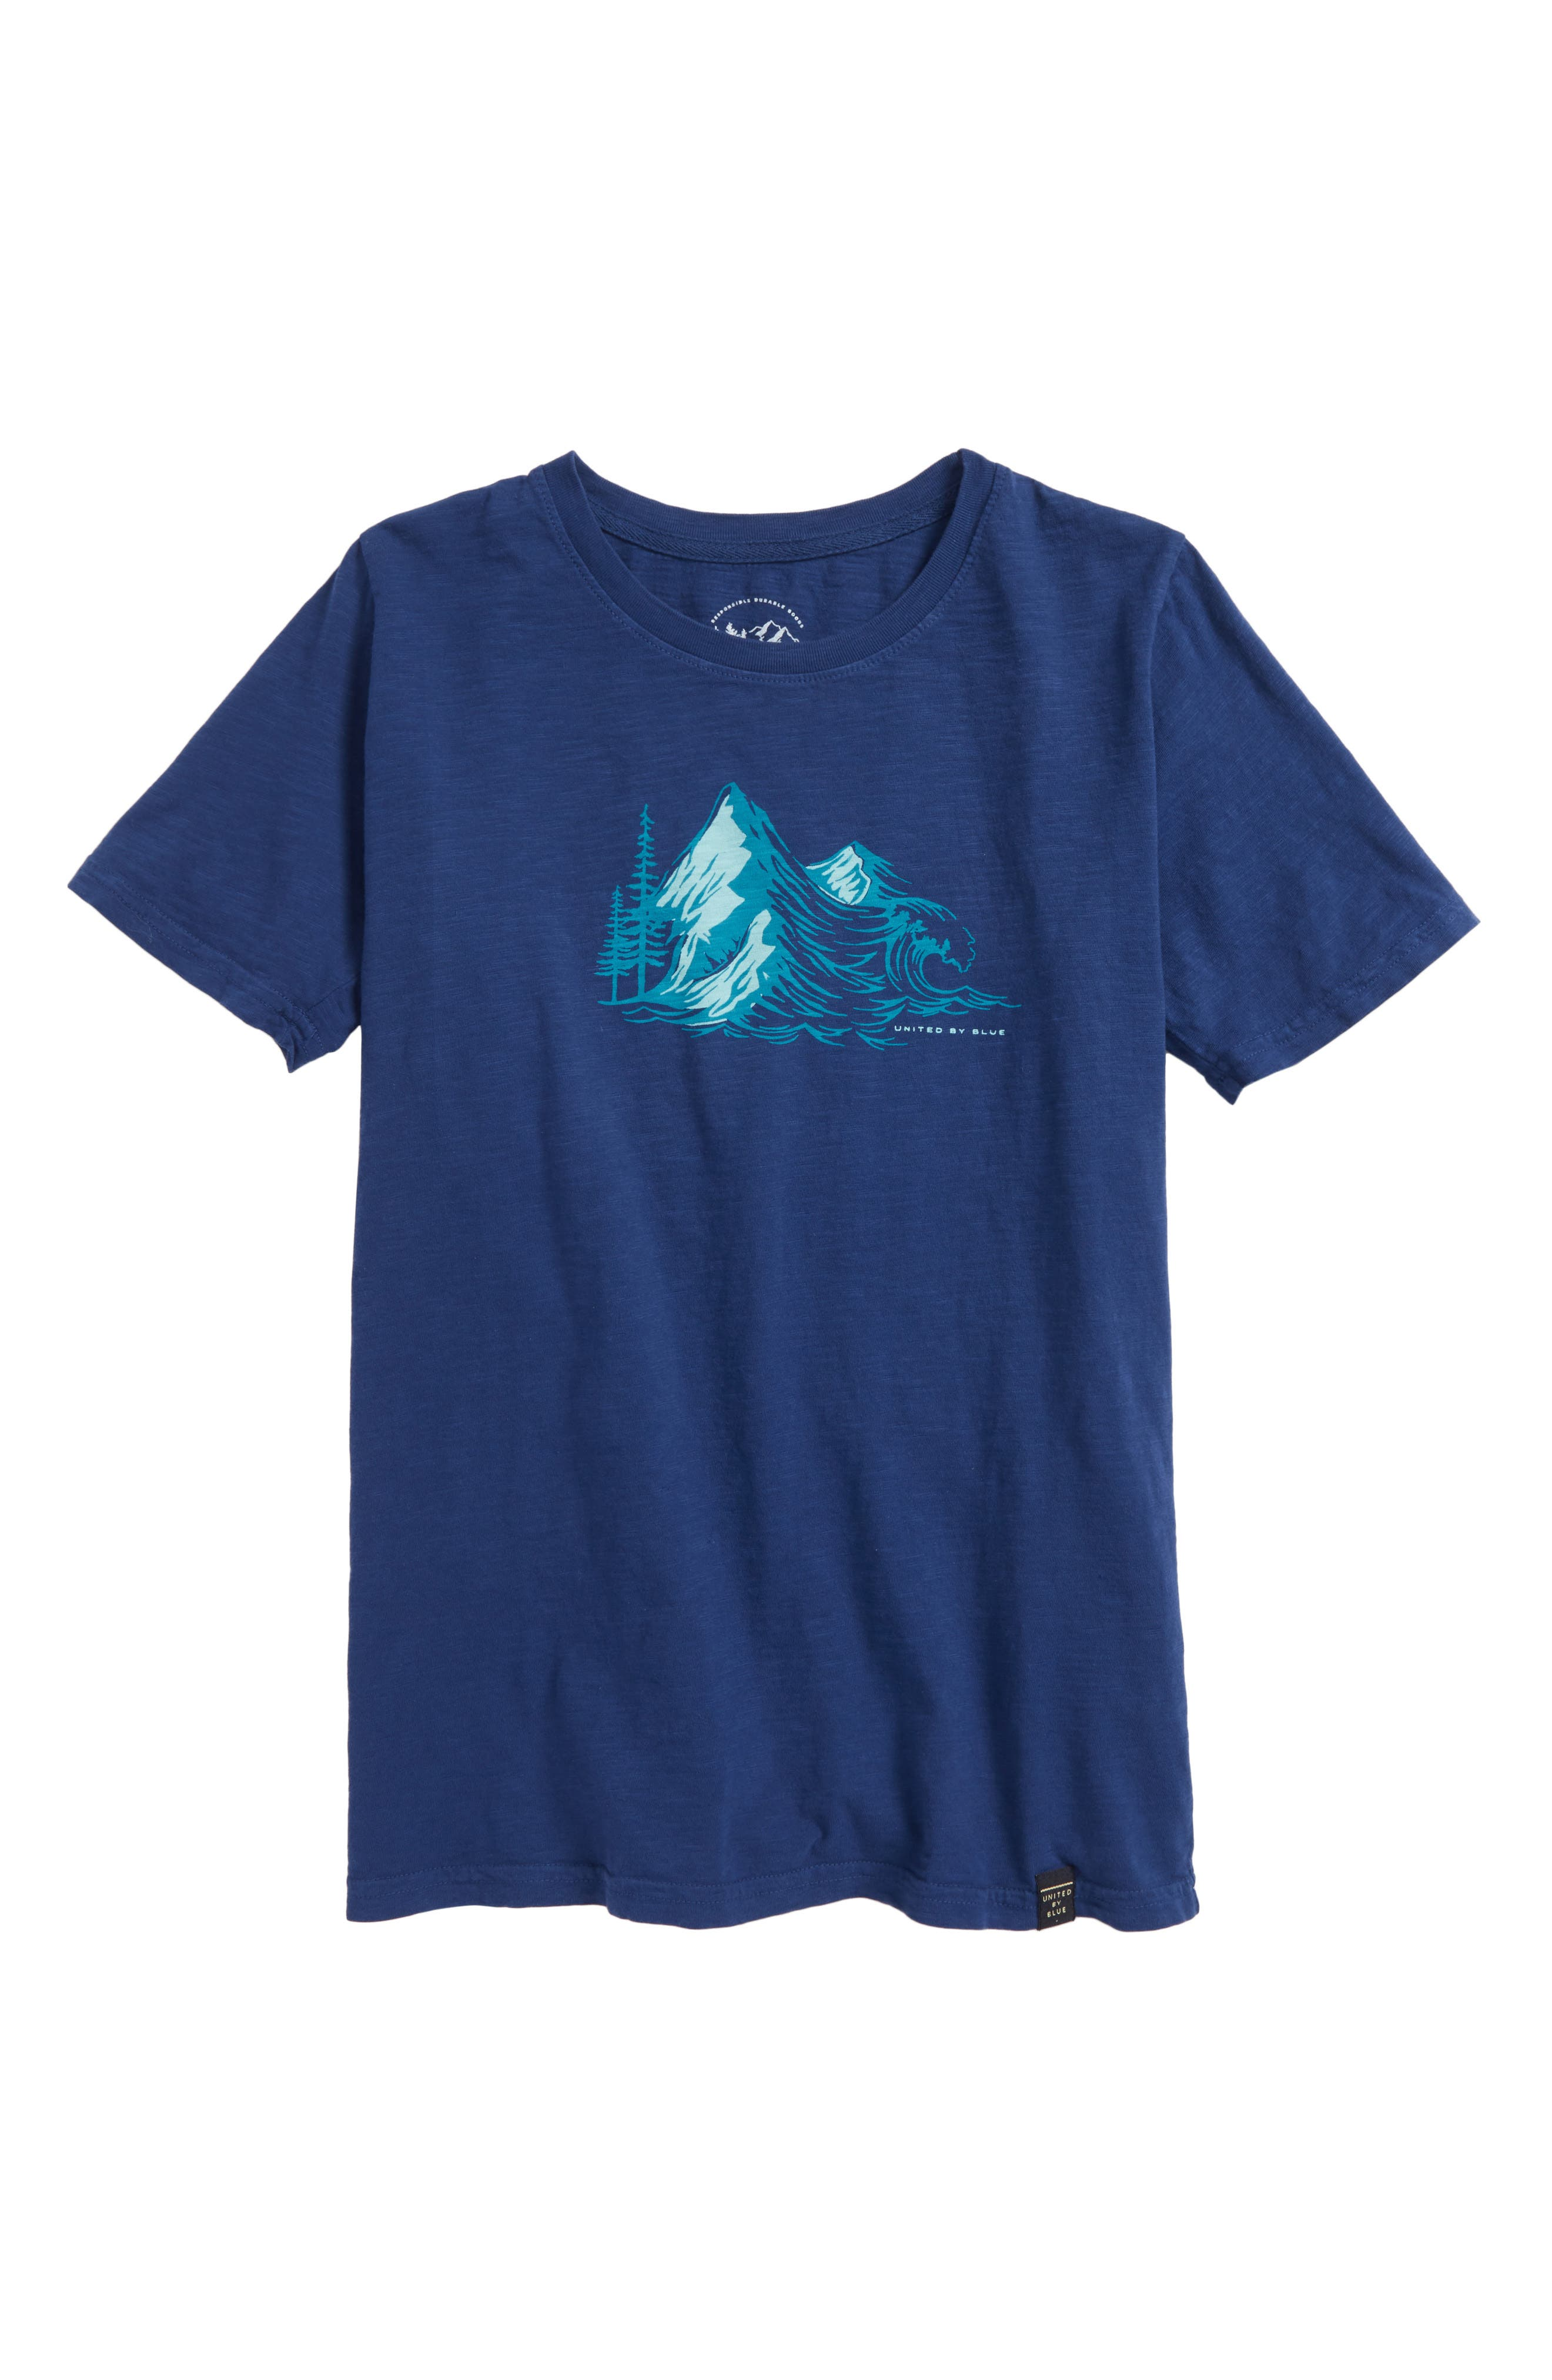 Peaks Graphic Organic Cotton T-Shirt,                             Main thumbnail 1, color,                             Navy